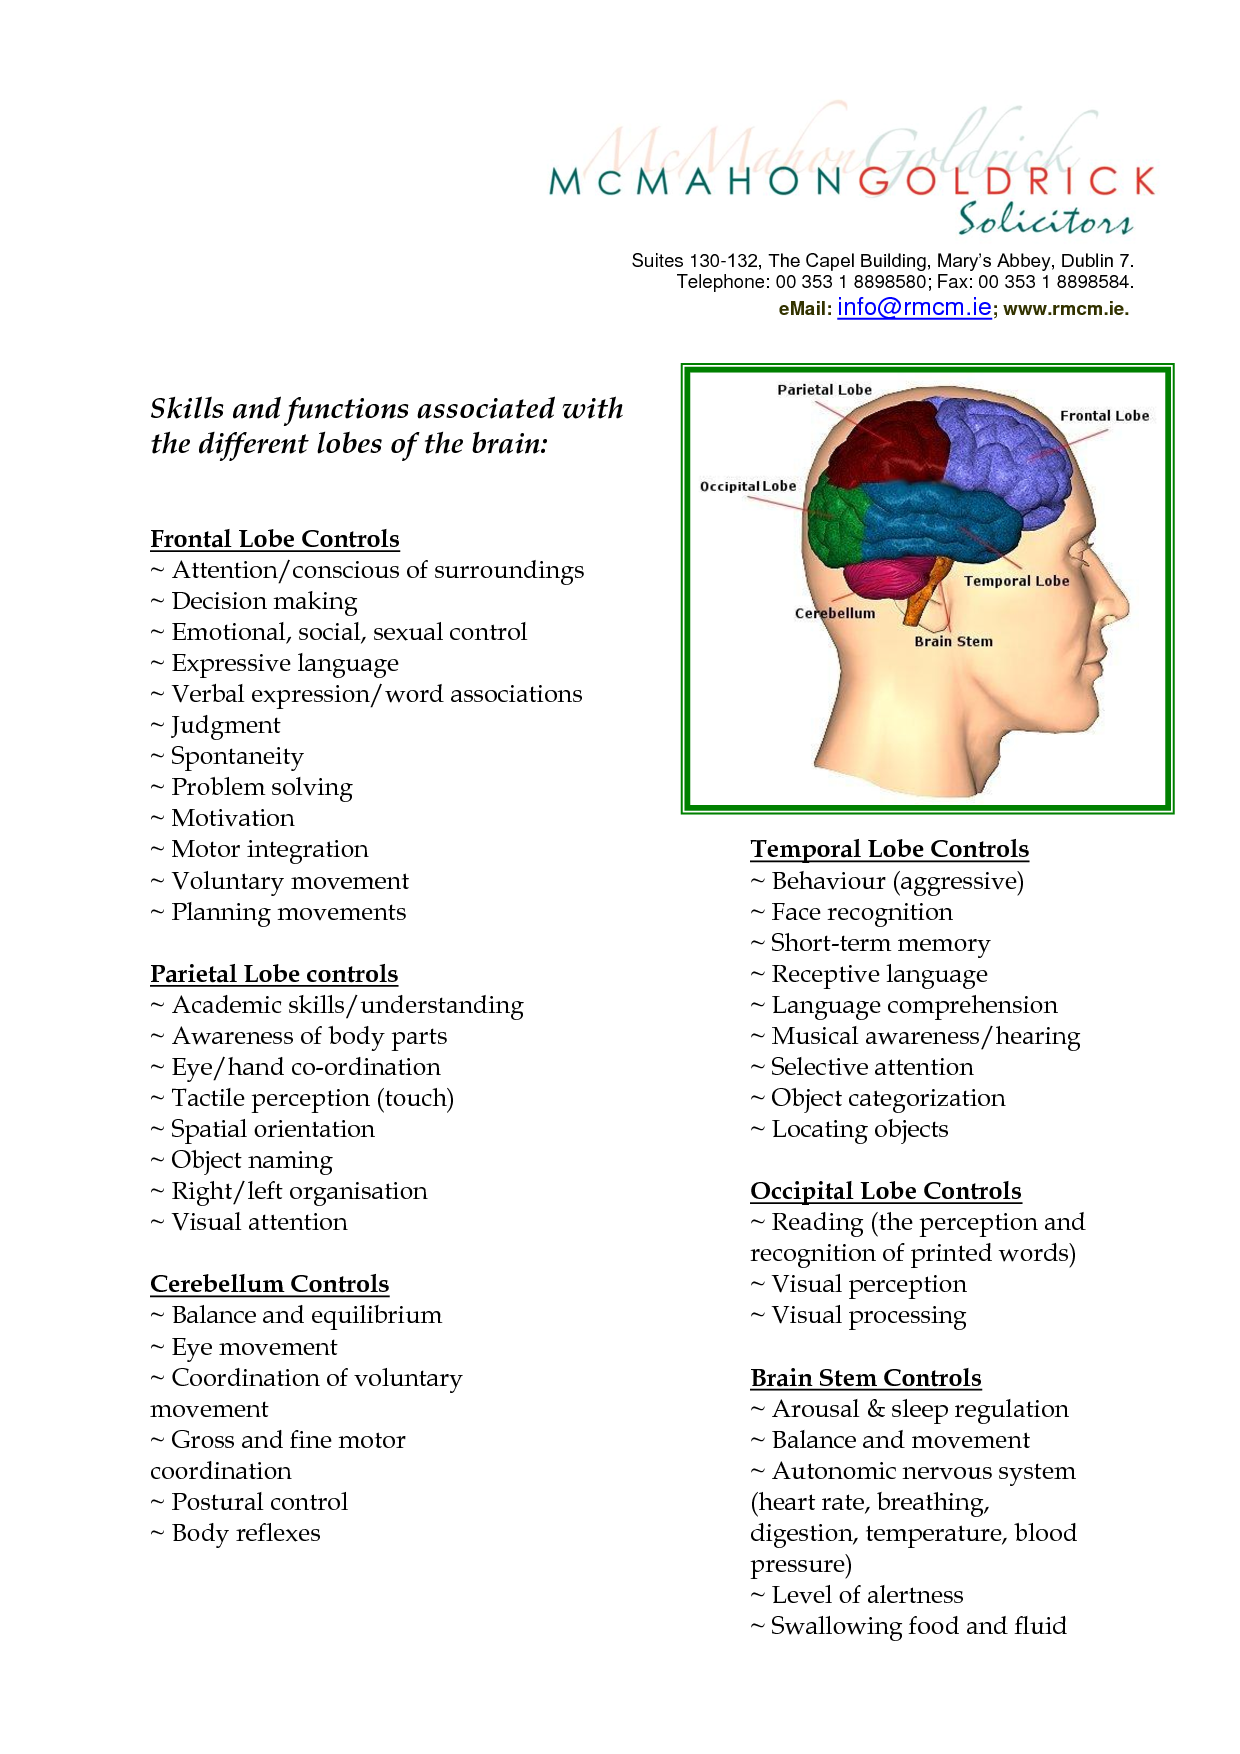 Clip Art Lobes Of The Brain And Their Functions